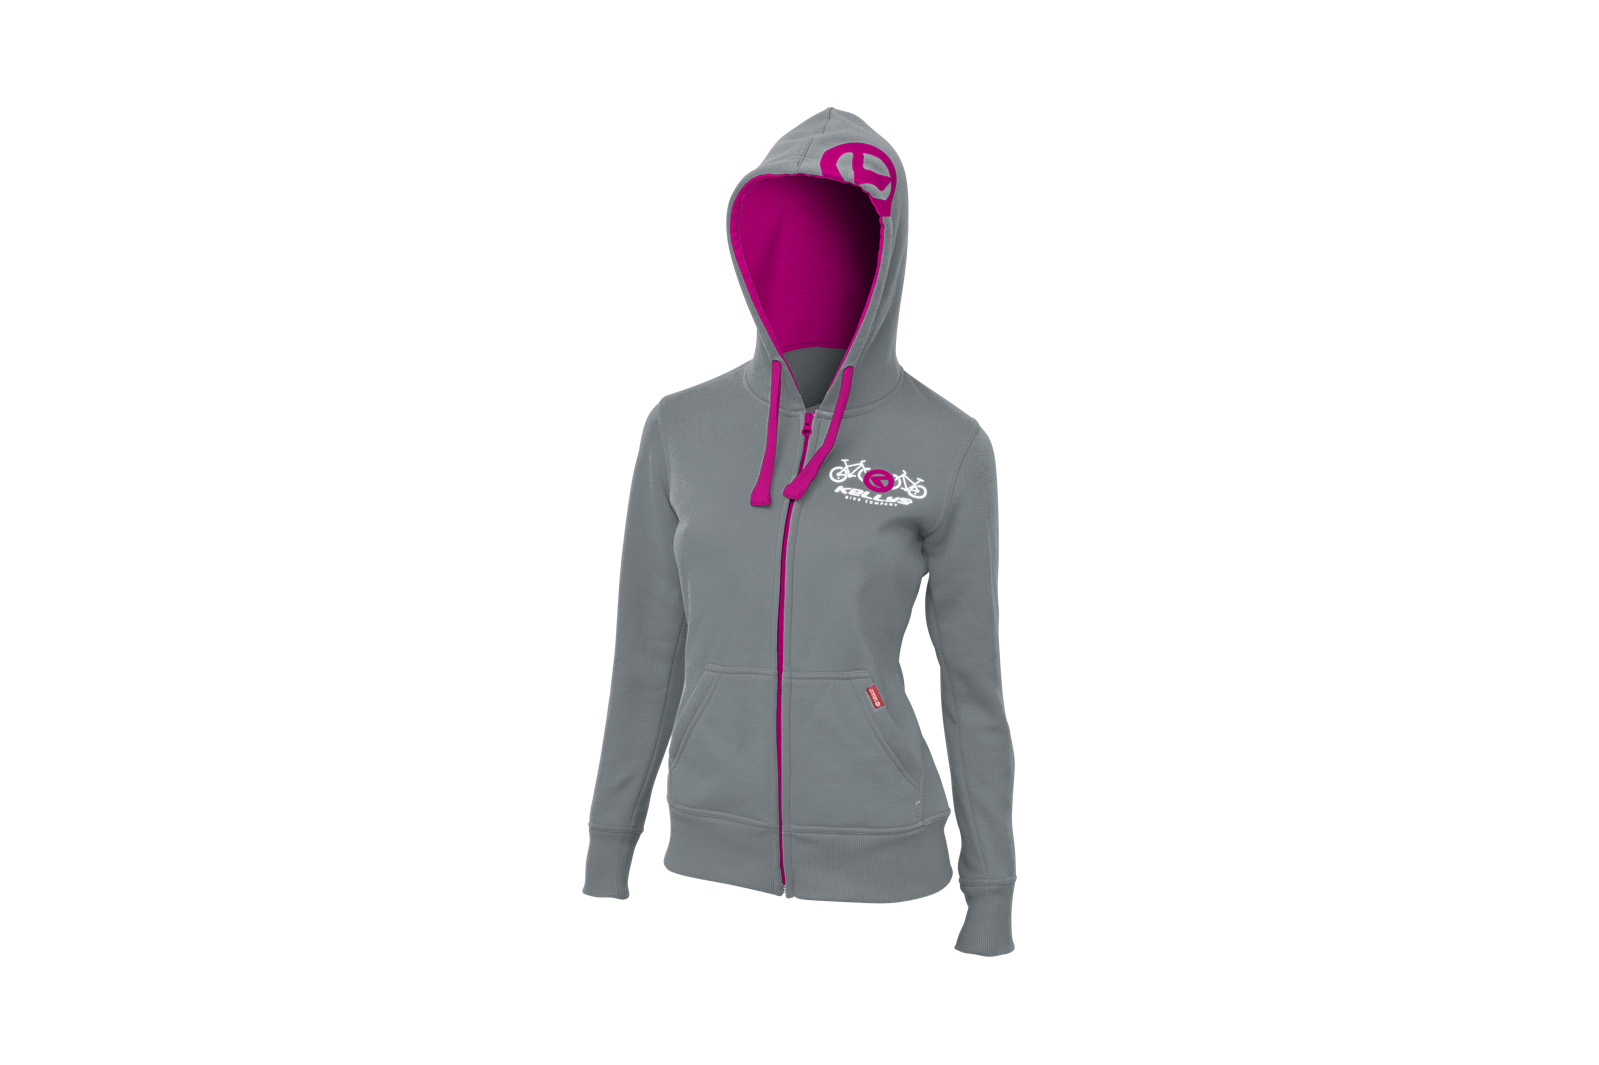 Sweatjacke KELLYS WOMEN´S BASIC Grey - XL - Fahrradhaus Haske